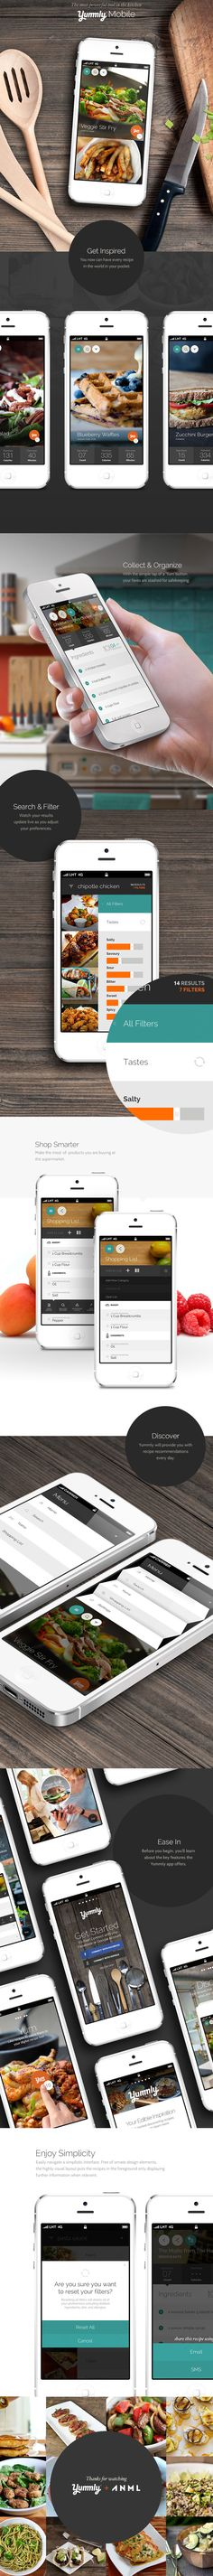 Yummly Mobile - this recipe app is AWESOME. I use it all the time.